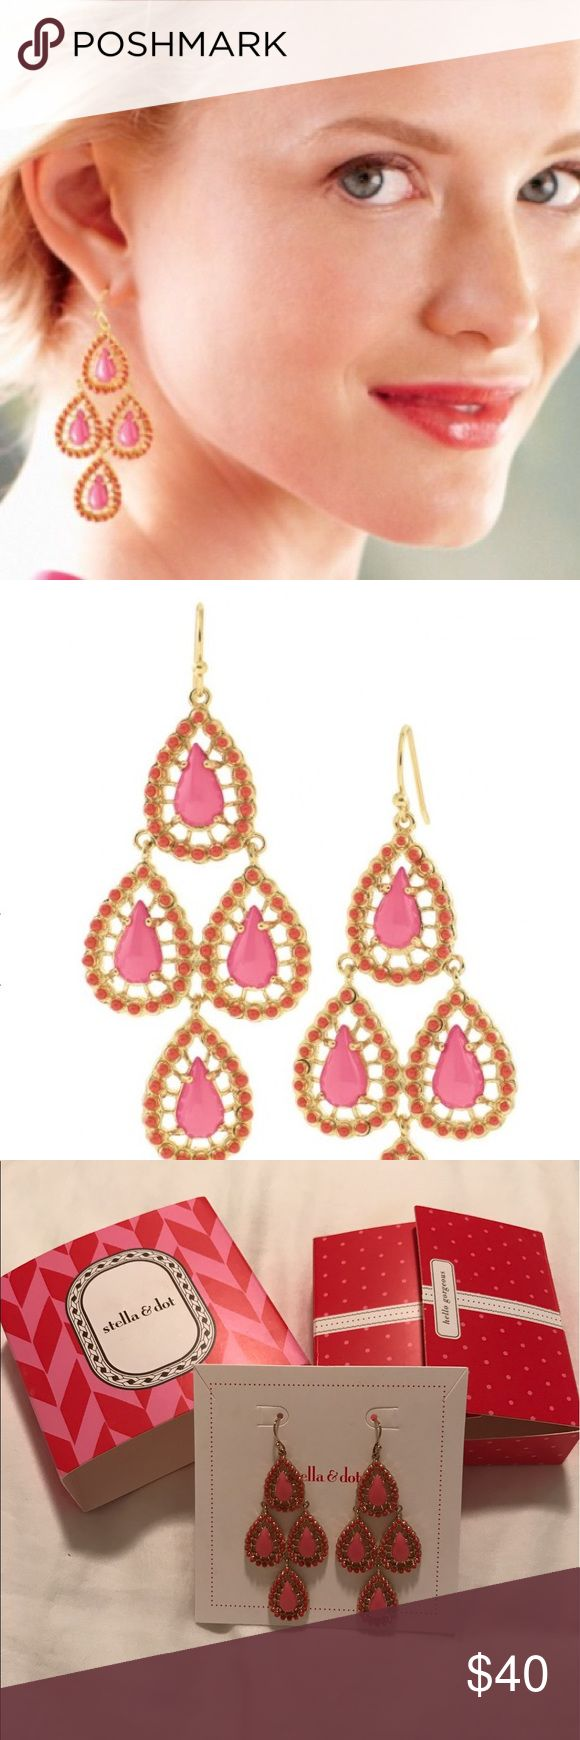 Seychelles Chandelier Earrings Stella and Dot Seychelles chandelier earrings. Teardrop chandeliers with handpainted fuchsia enamel. Sterling silver with gold plate. 2.25 inches long. Statement weight. Great fun pair of earrings! Brand new. Box & all packaging shown included.                                            💎 Bundle & Save 10% on 2+ items 💎 No Trades Stella & Dot Jewelry Earrings